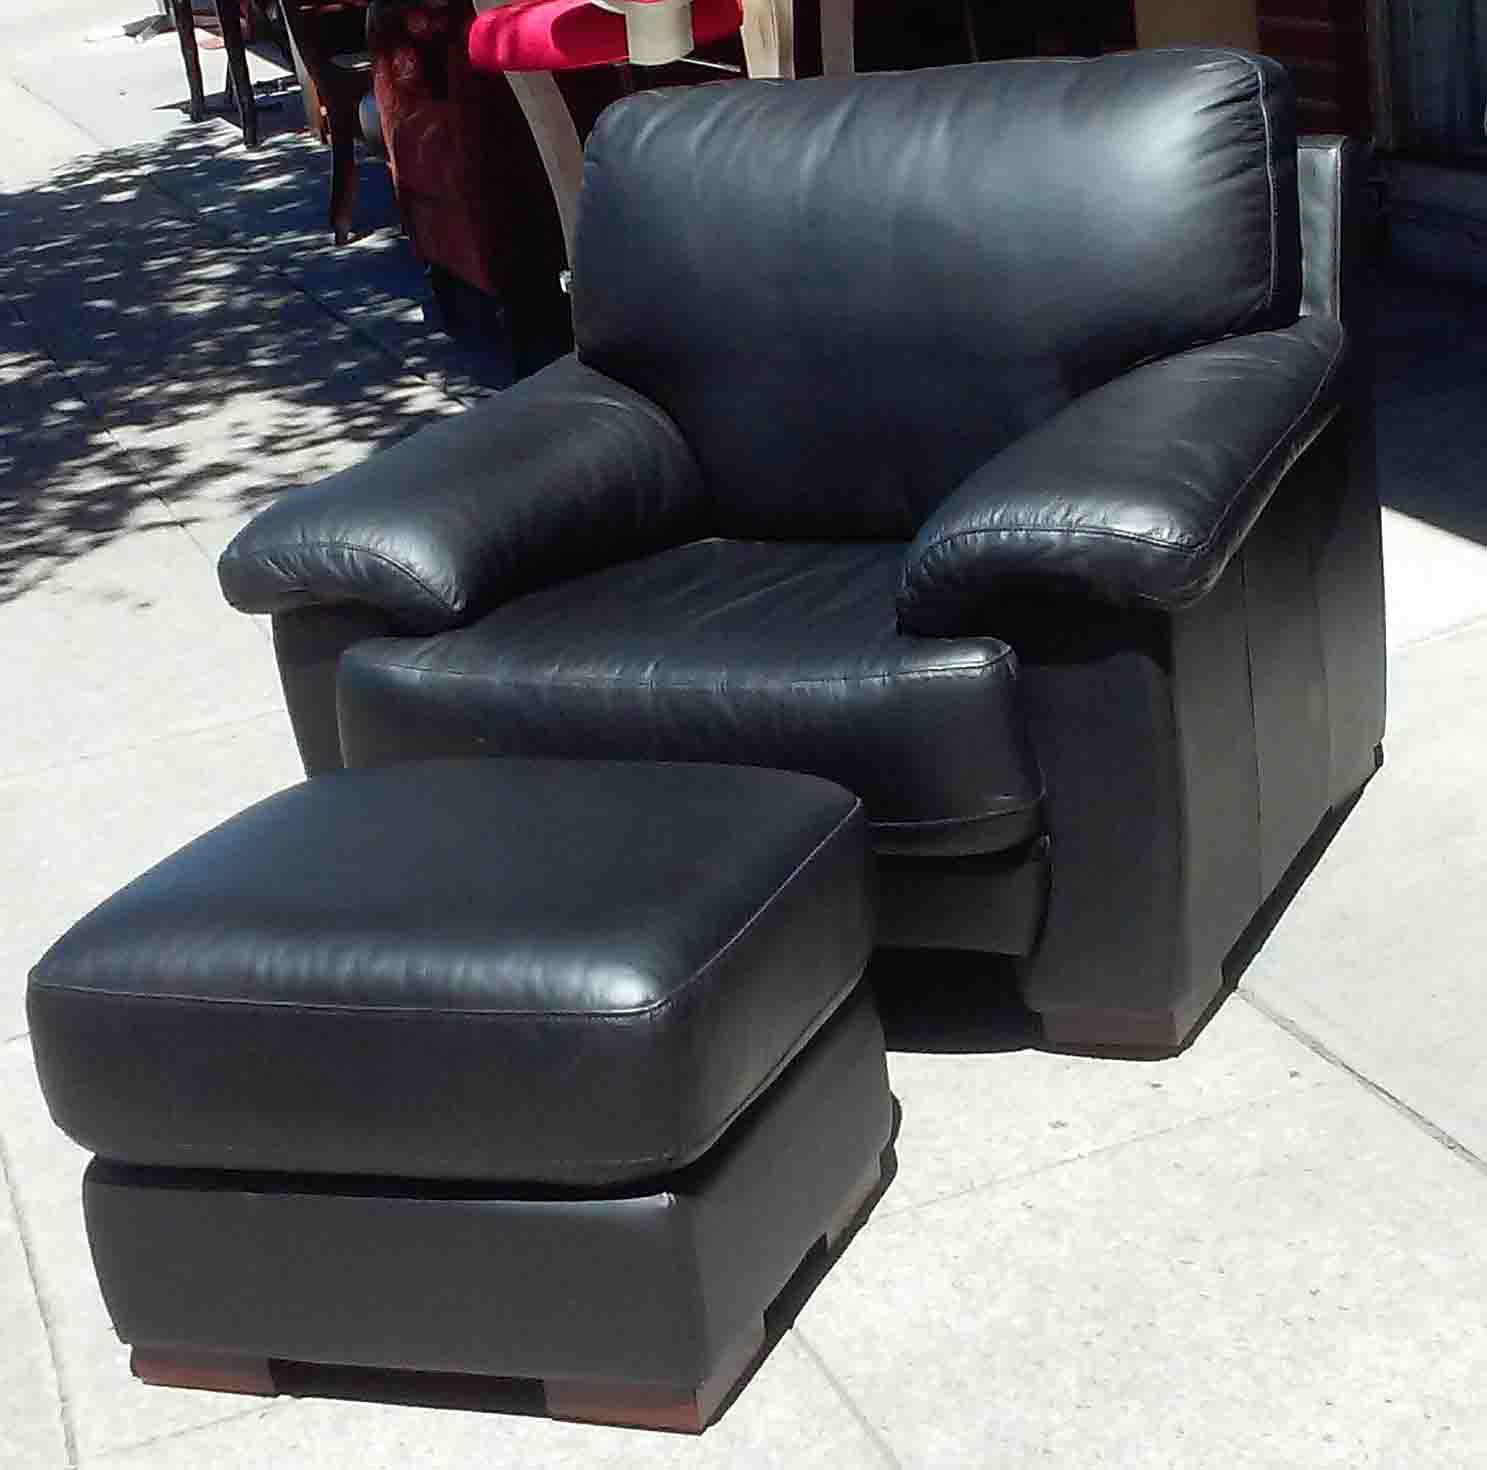 Uhuru Furniture Amp Collectibles Sold Black Leather Chair